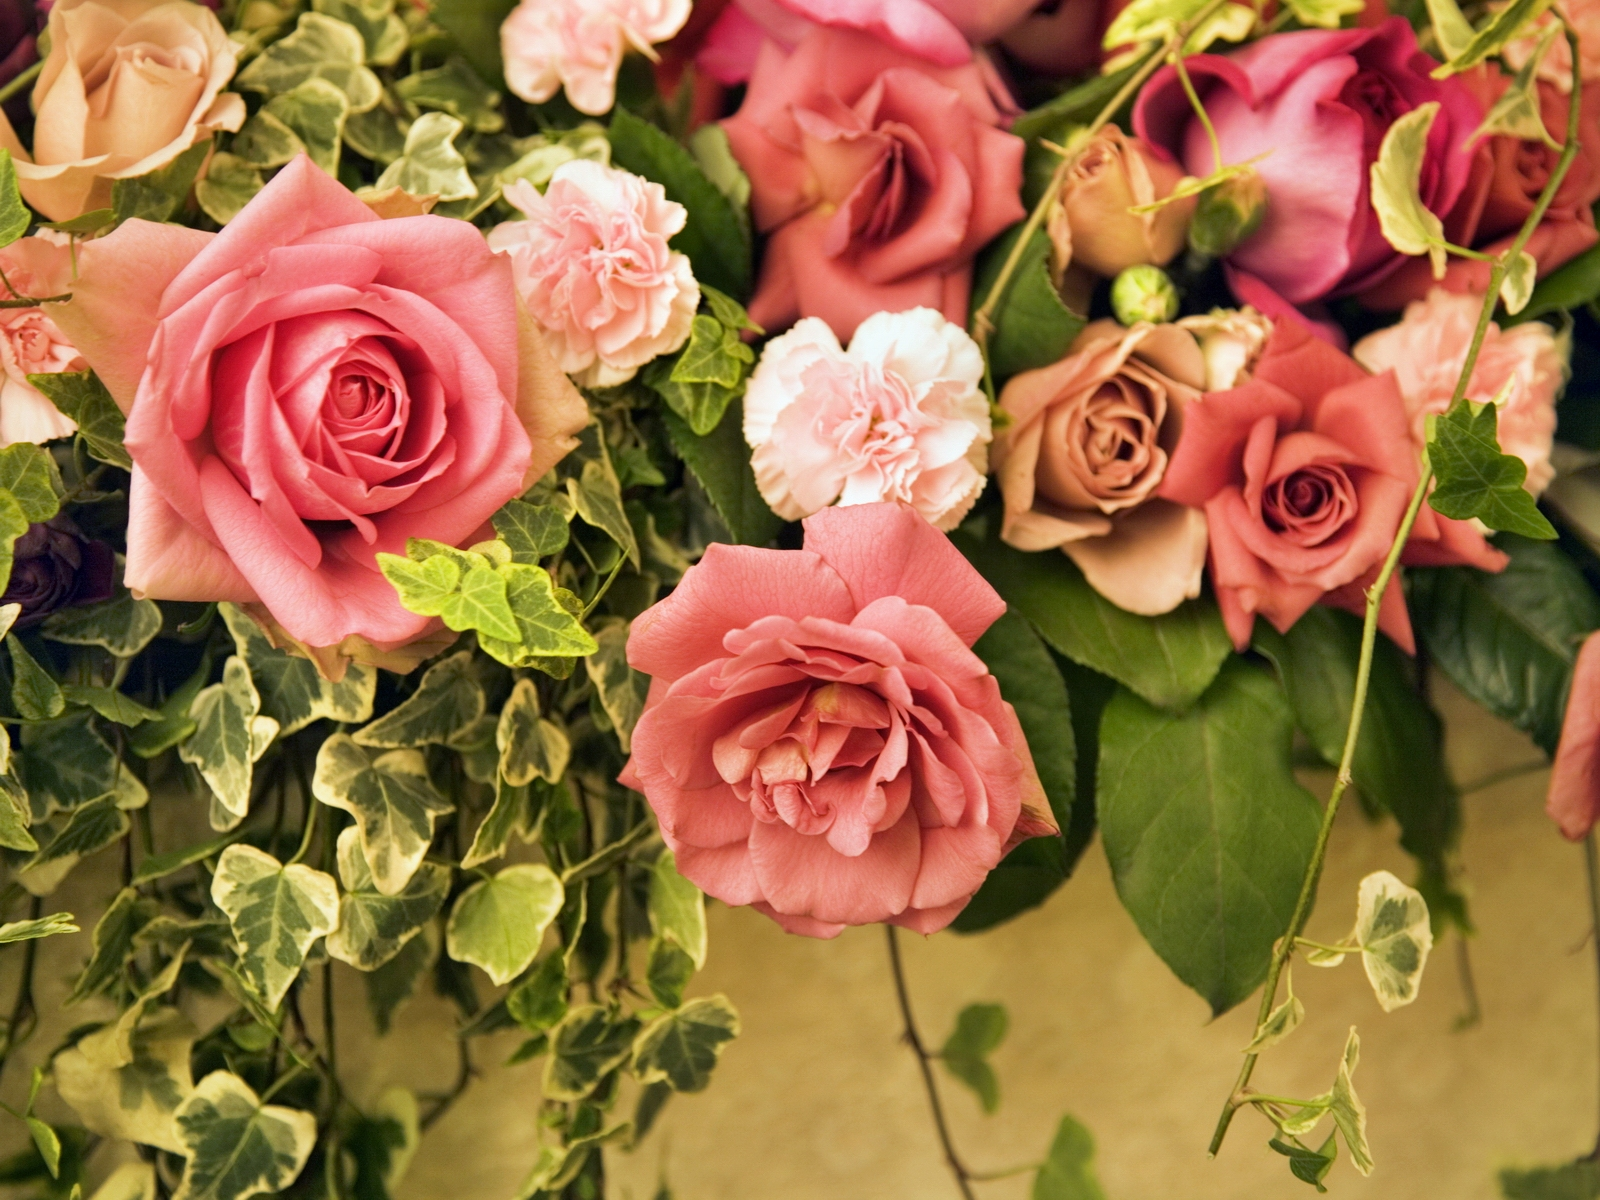 Download photos of beautiful flowers images about beautiful flowers beautiful flowers izmirmasajfo Image collections